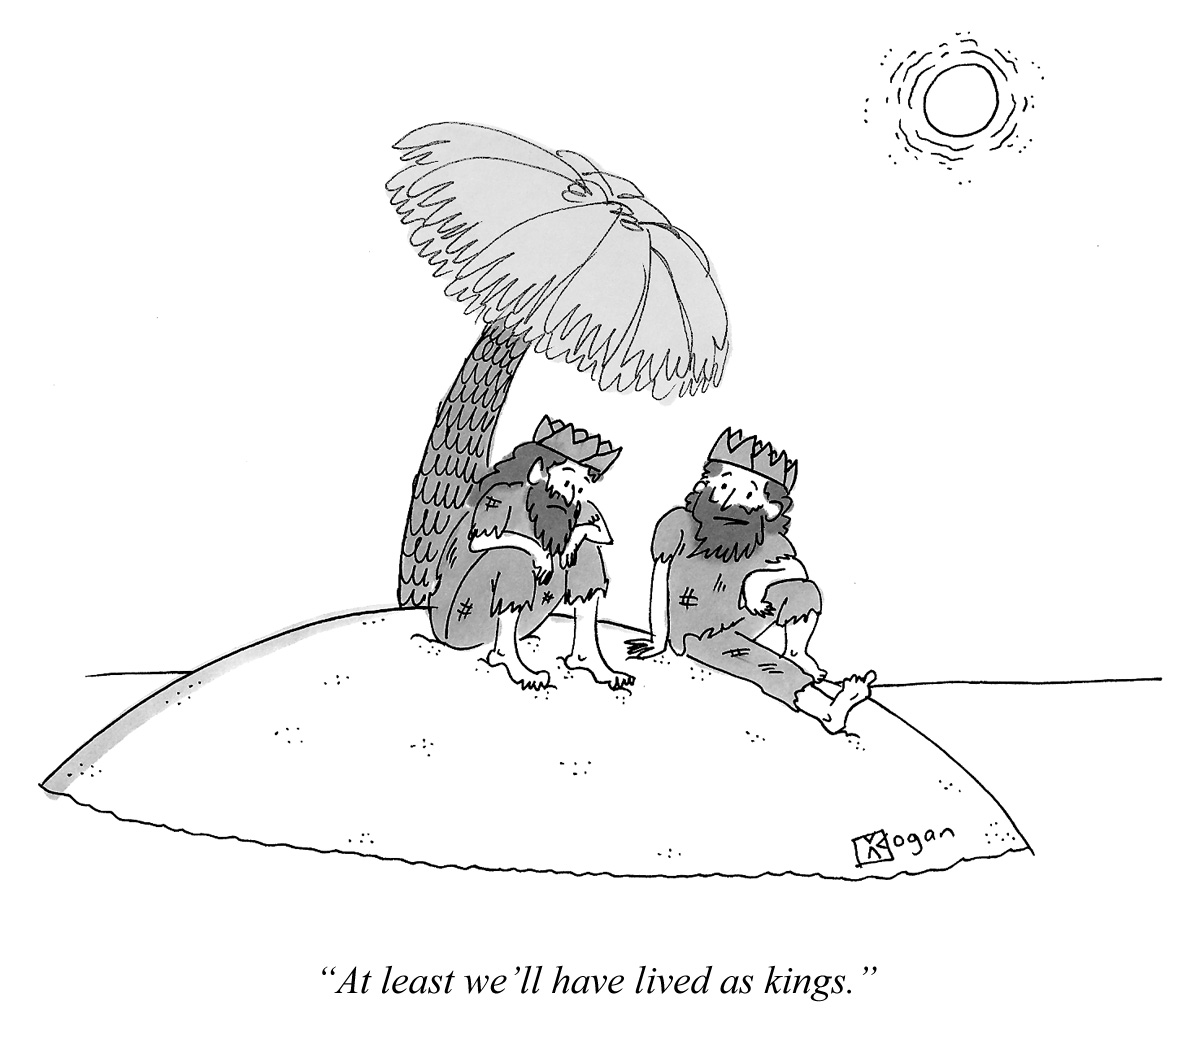 Cartoon about living as kings on a desert island.